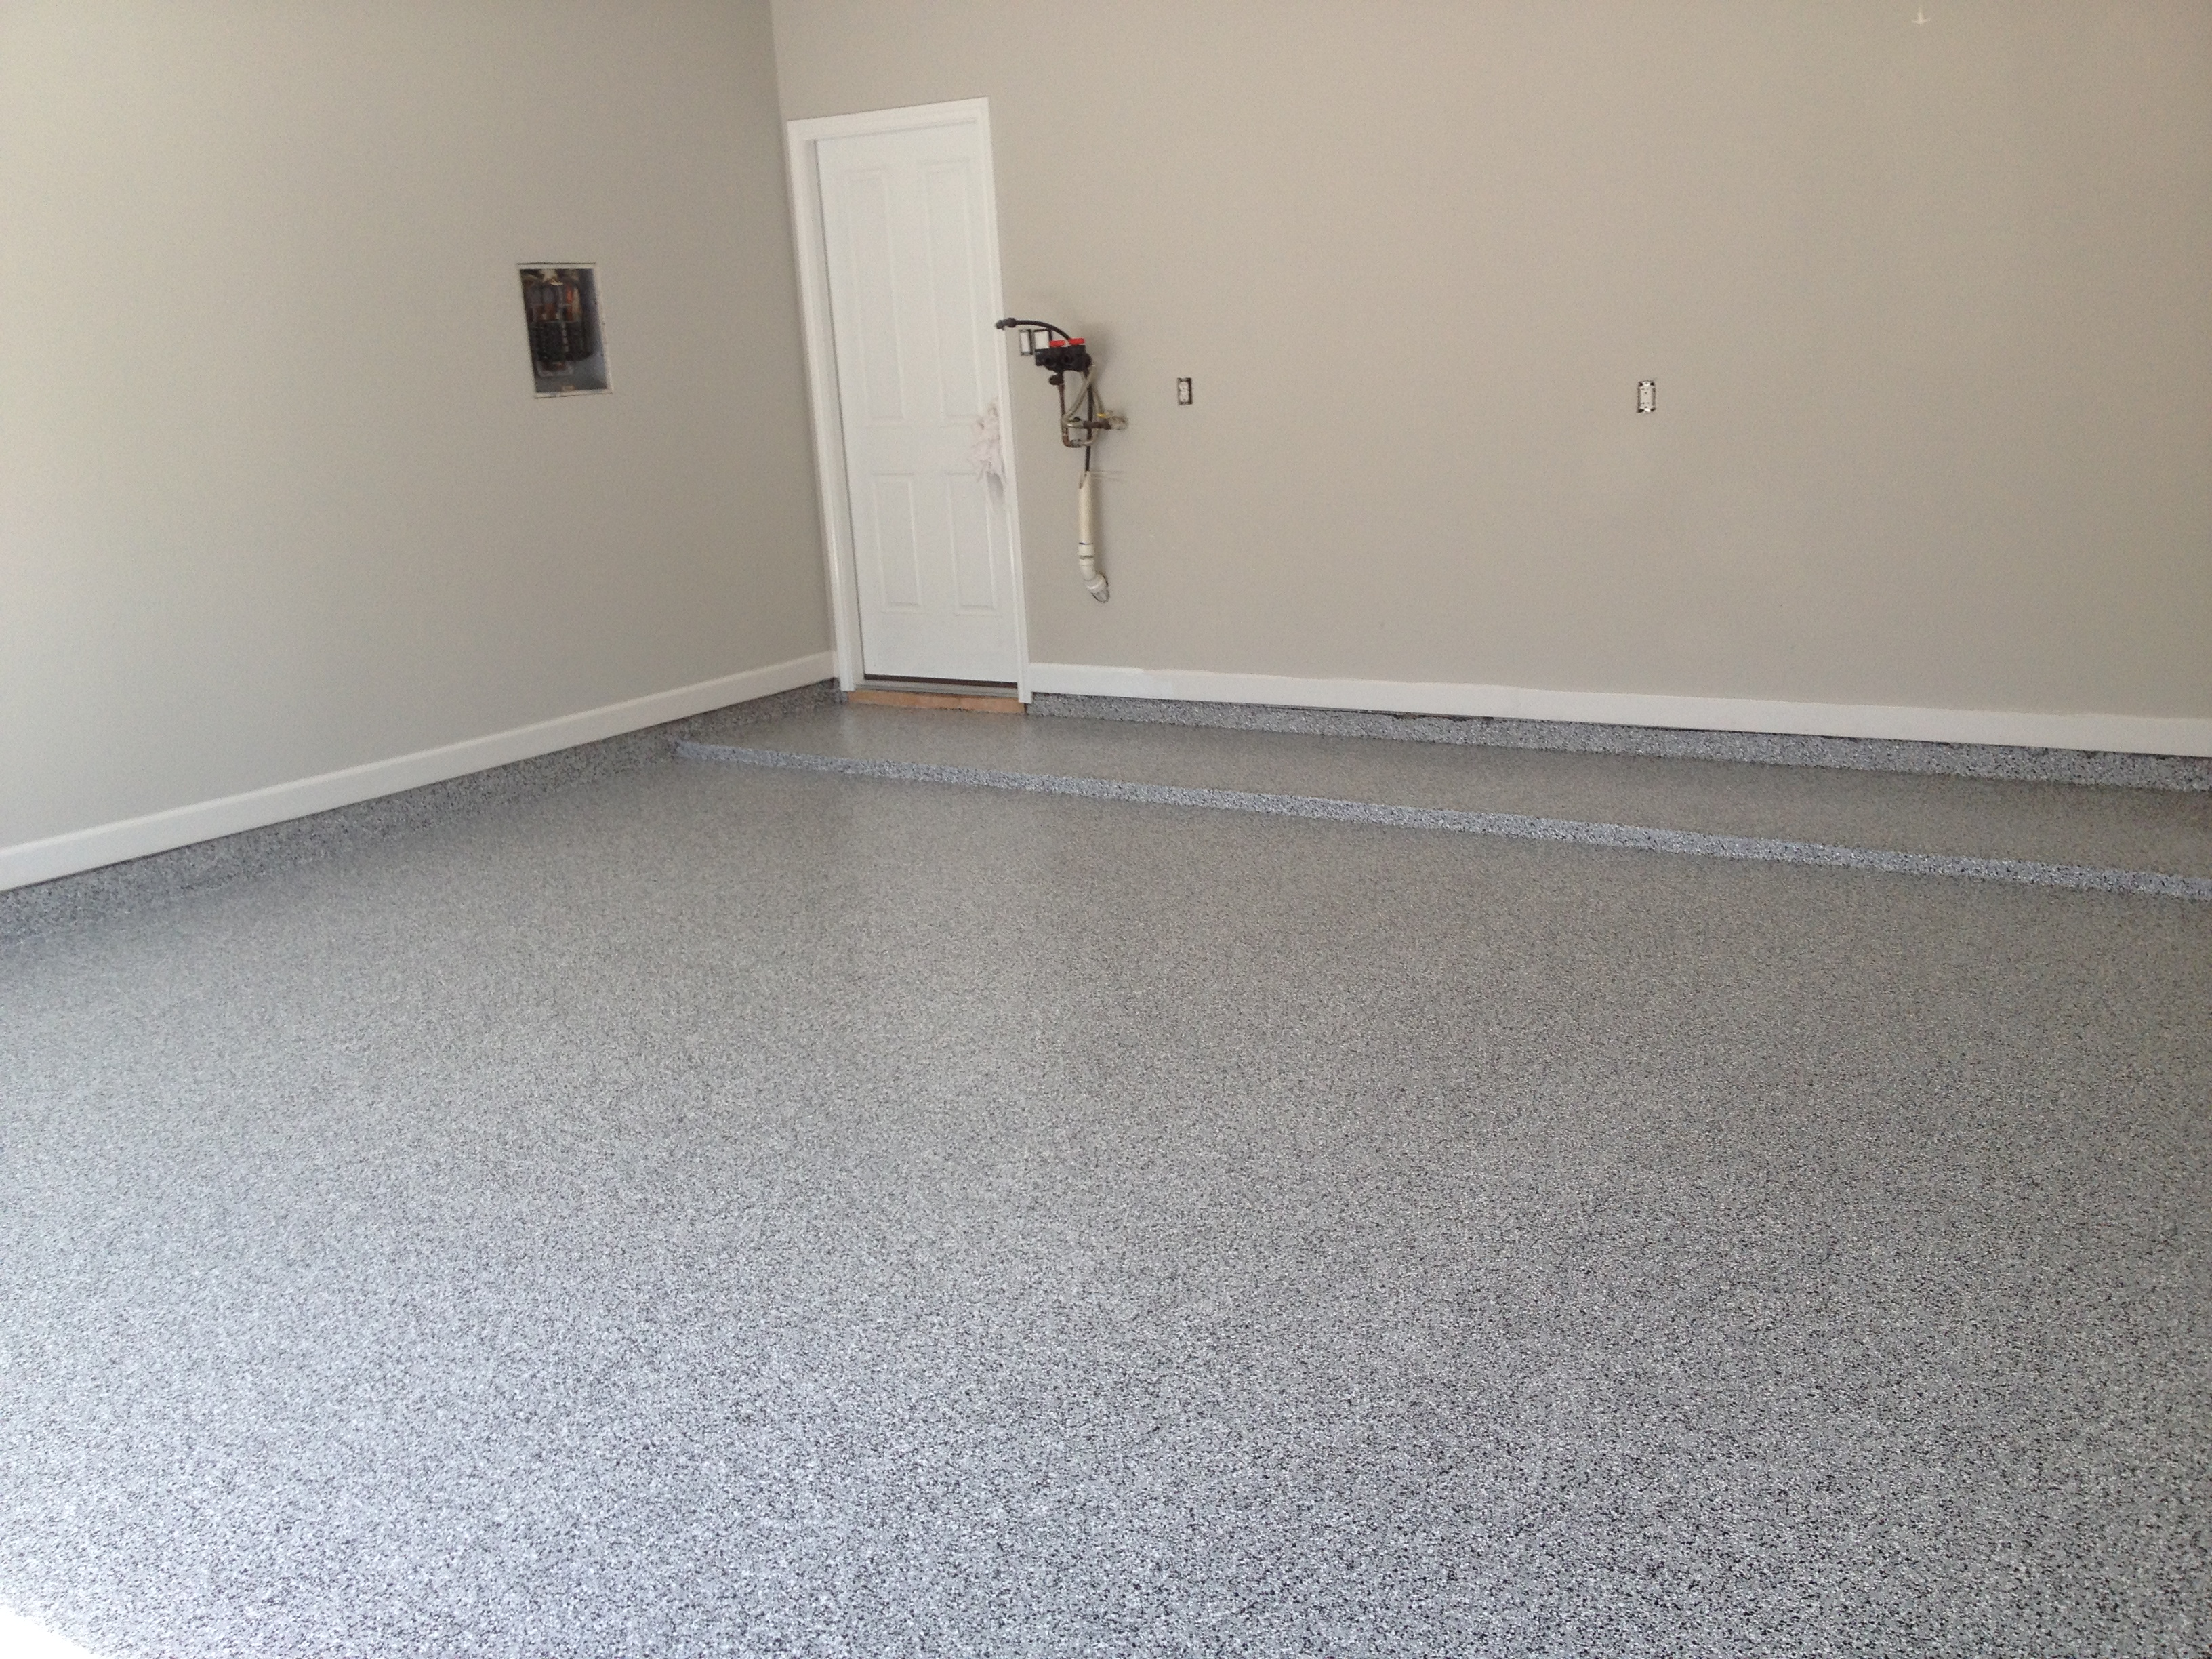 granite flooring san antonio granite floor coating garage flooring project IFTSFGN